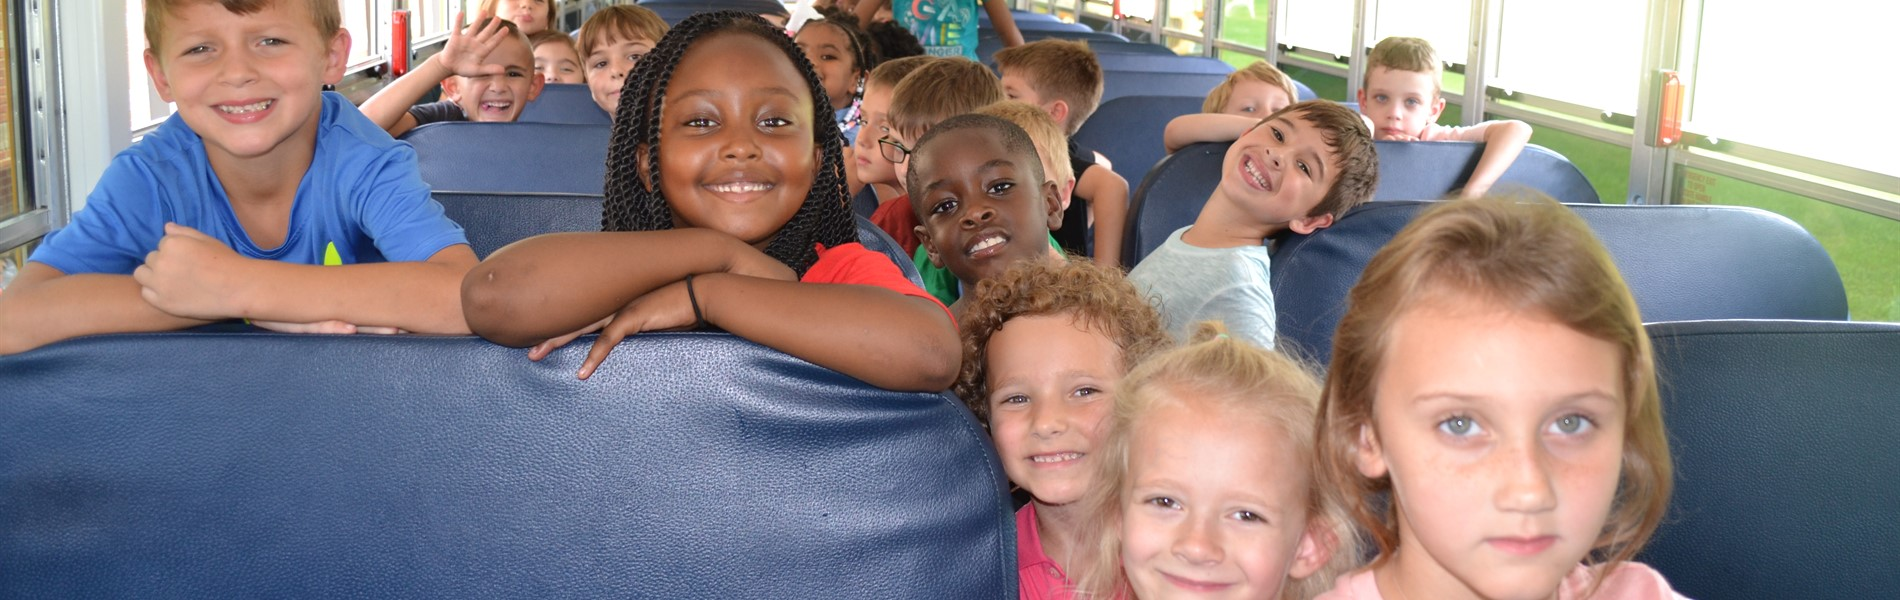 First graders practicing bus safety